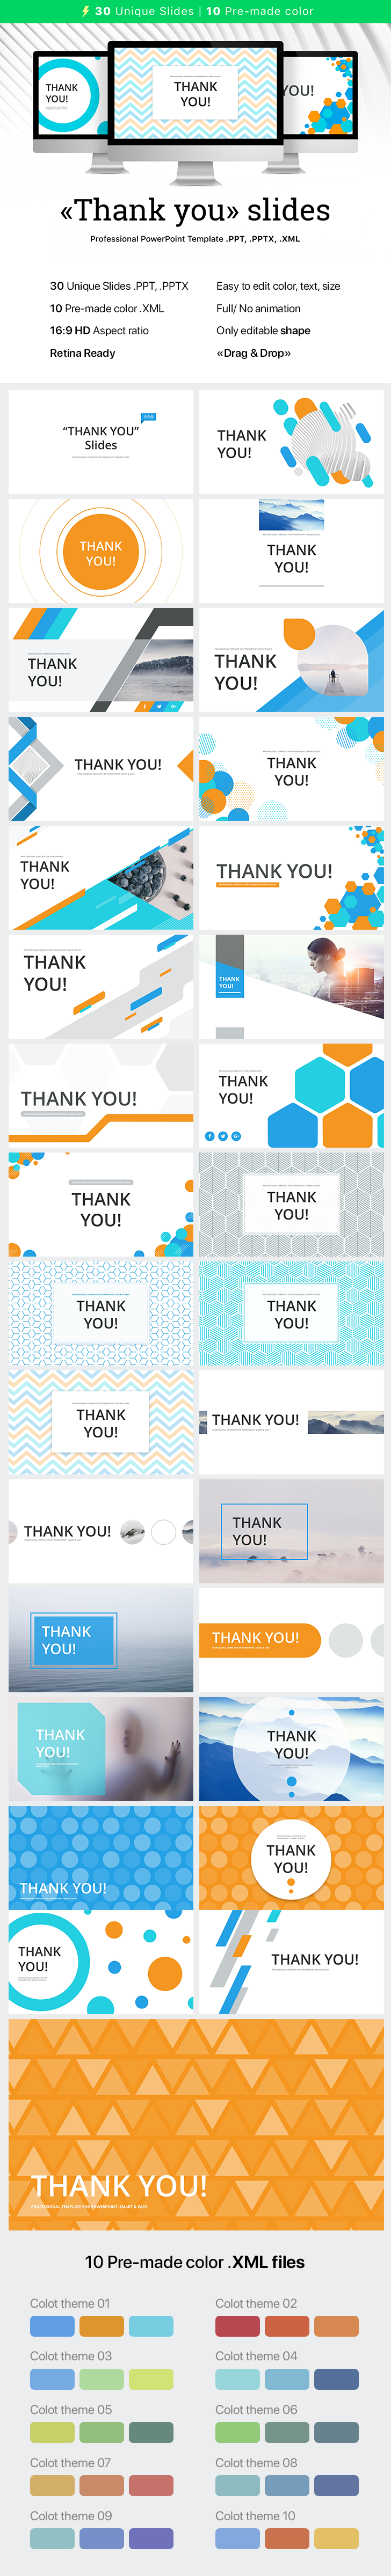 thank-you-ppt